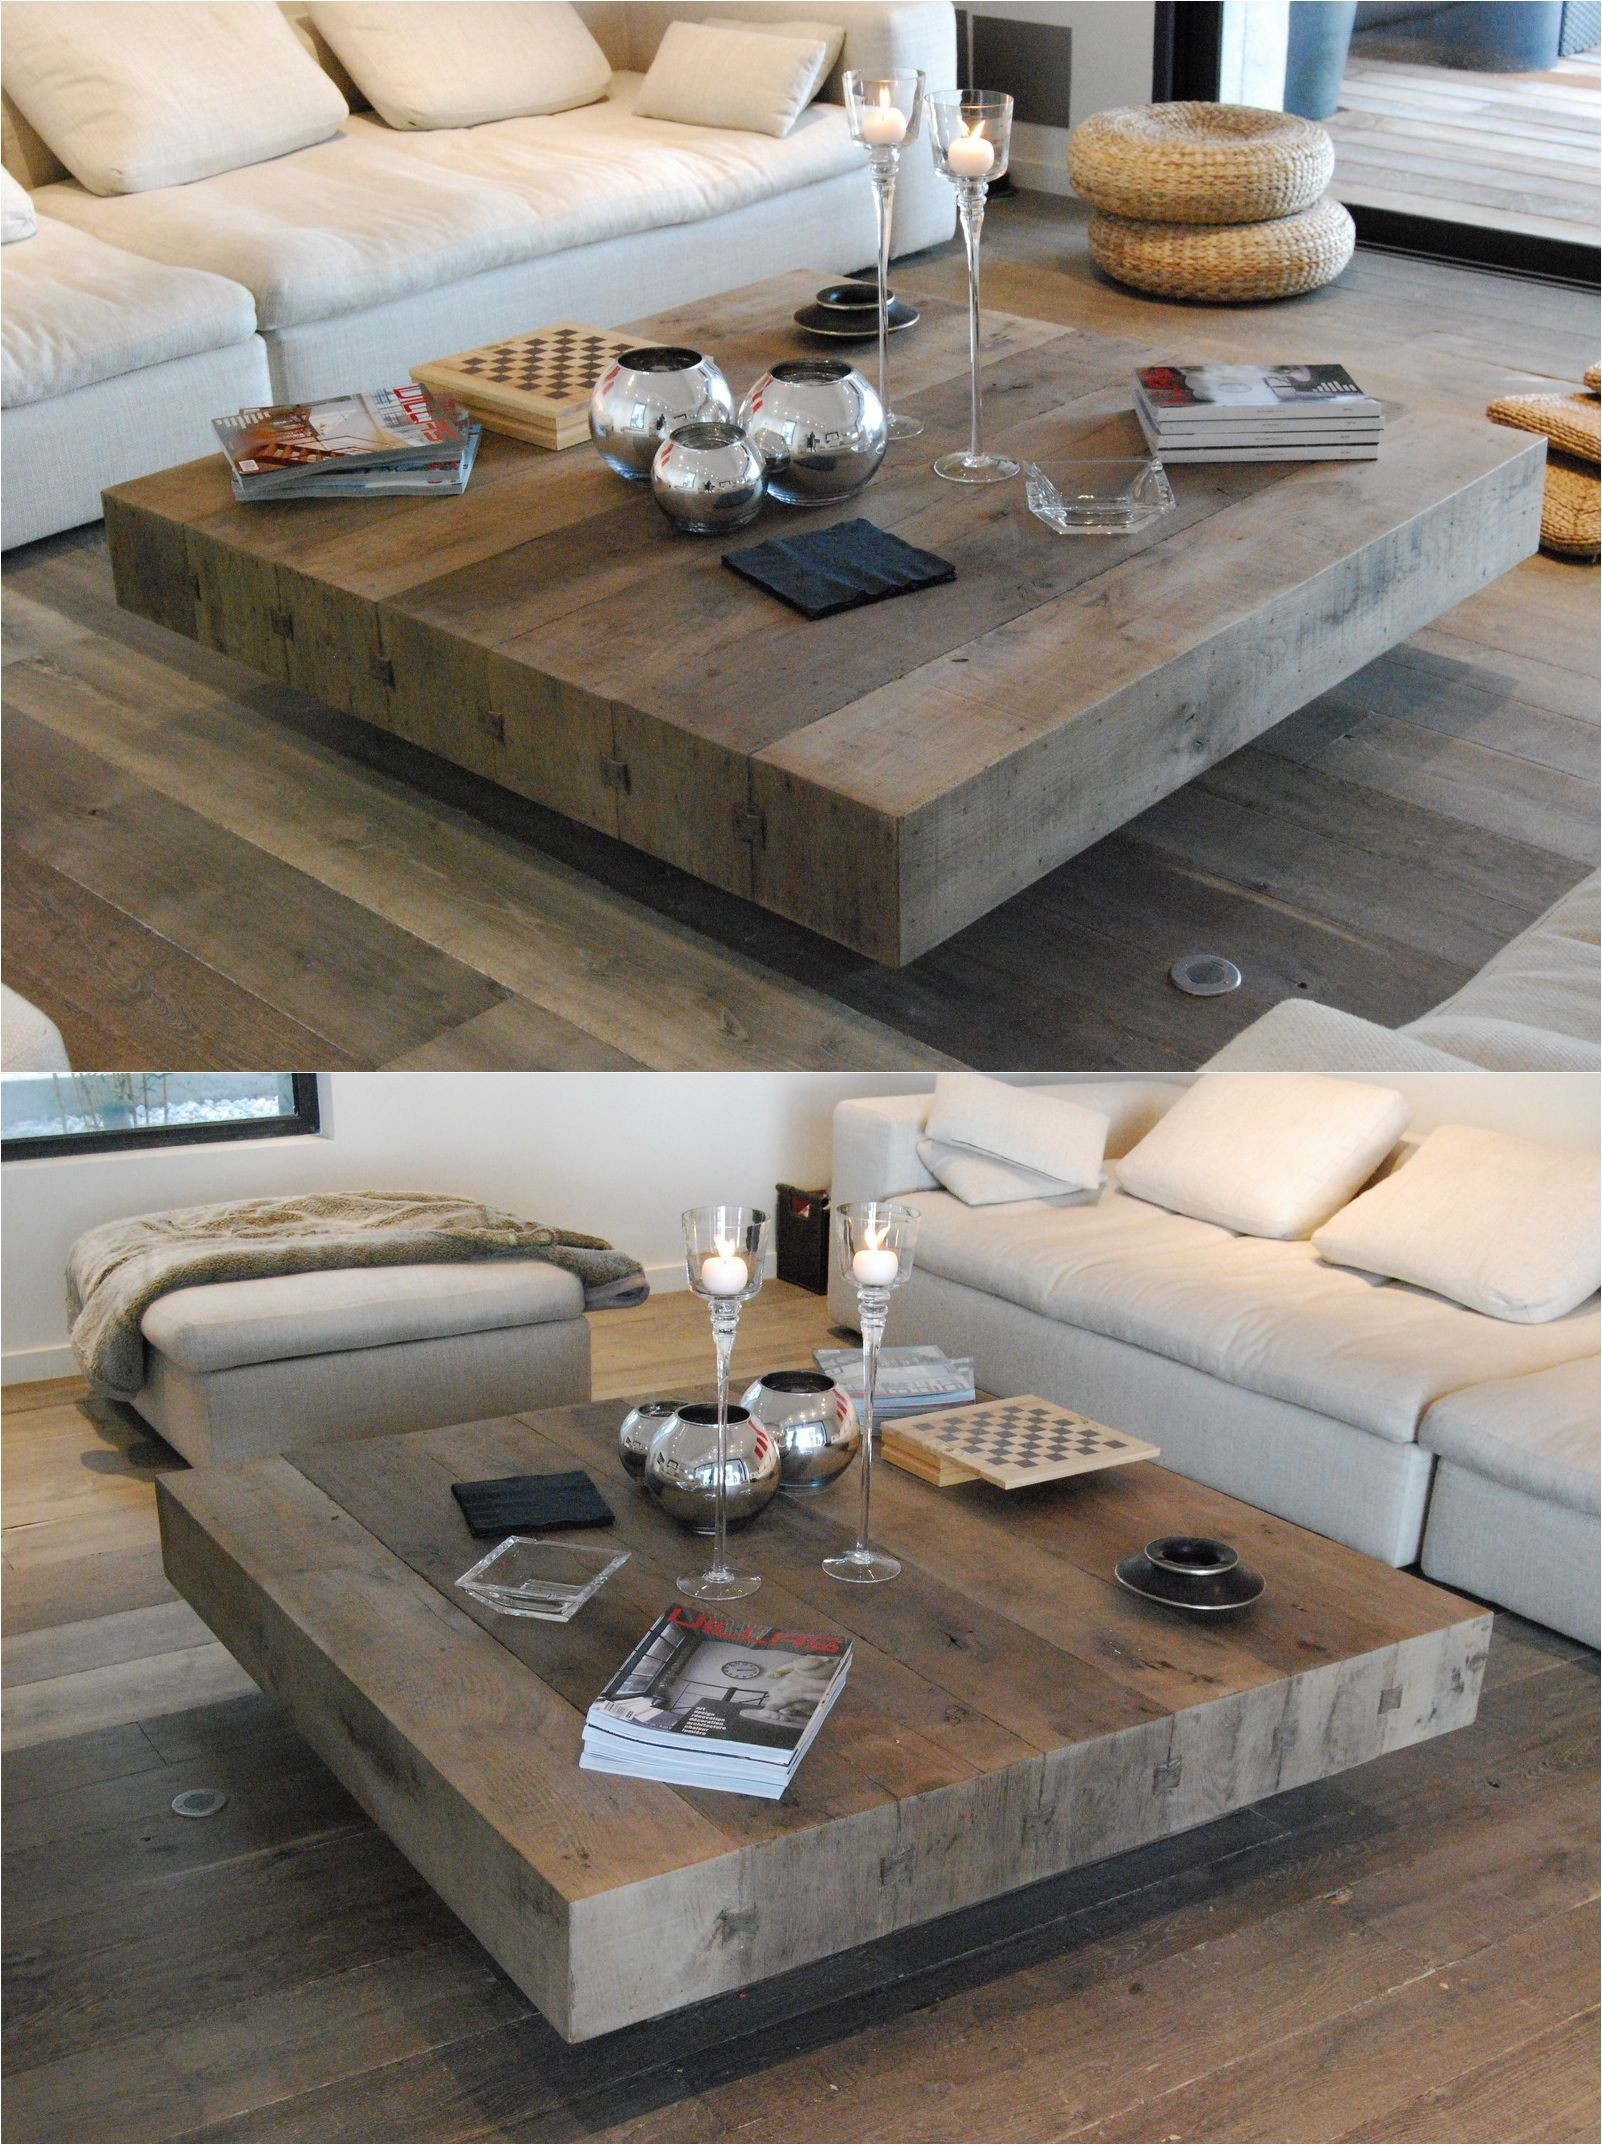 Bonheur Wooden Handmade Square Coffee Table By Dir Ca Diy Living Room Without